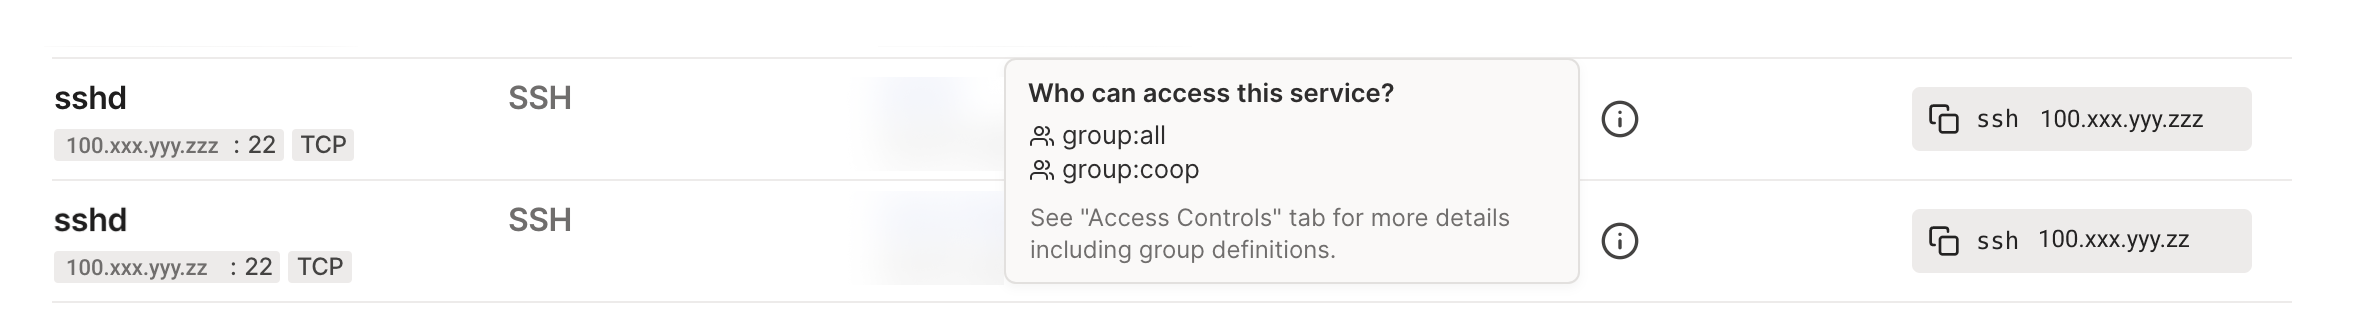 A screenshot of the services ACL preview, showing which users are allowed to access this service.